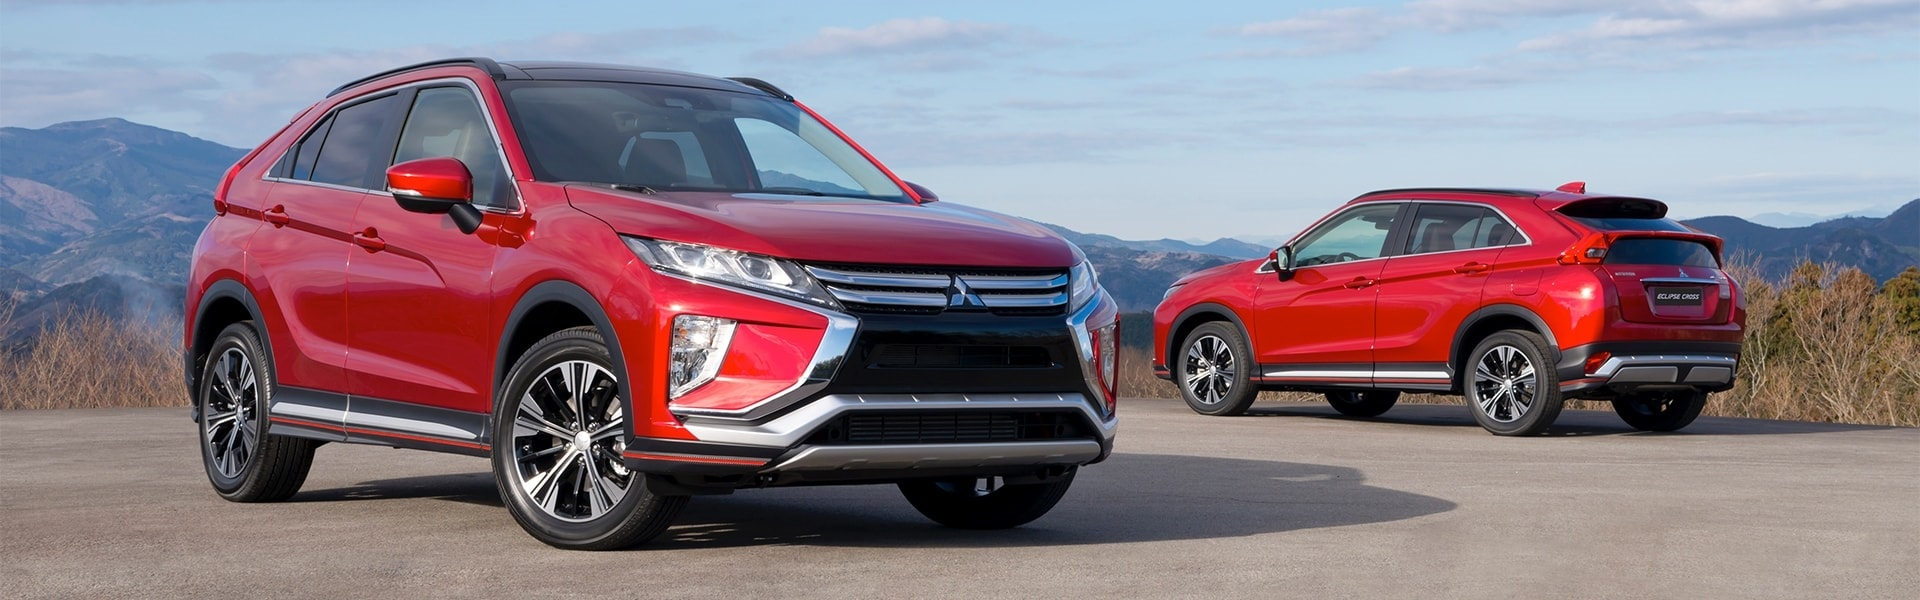 30-mitsubishi-eclipse-cross-front-and-rear-2017